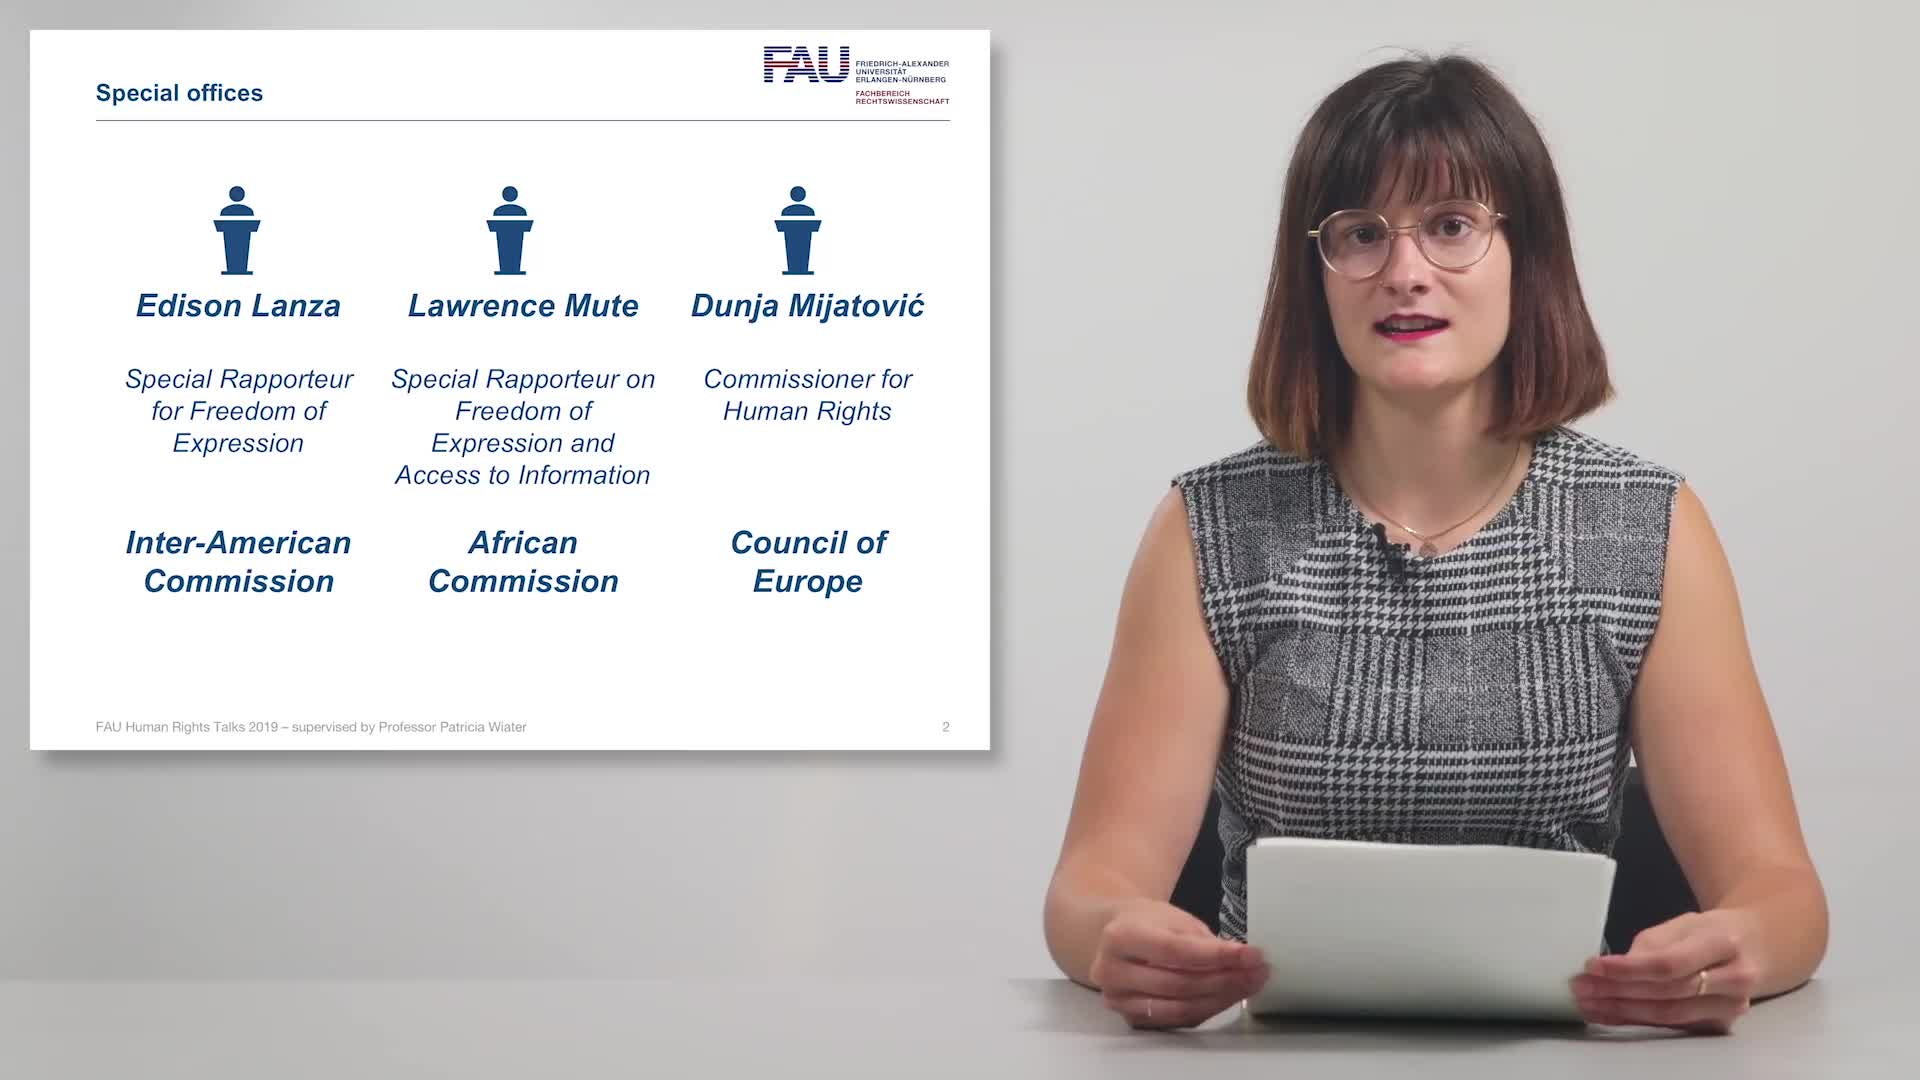 FAU Human Rights Talks – Summer Term 2019: Alternative Mechanisms for Protecting Freedom of Press preview image